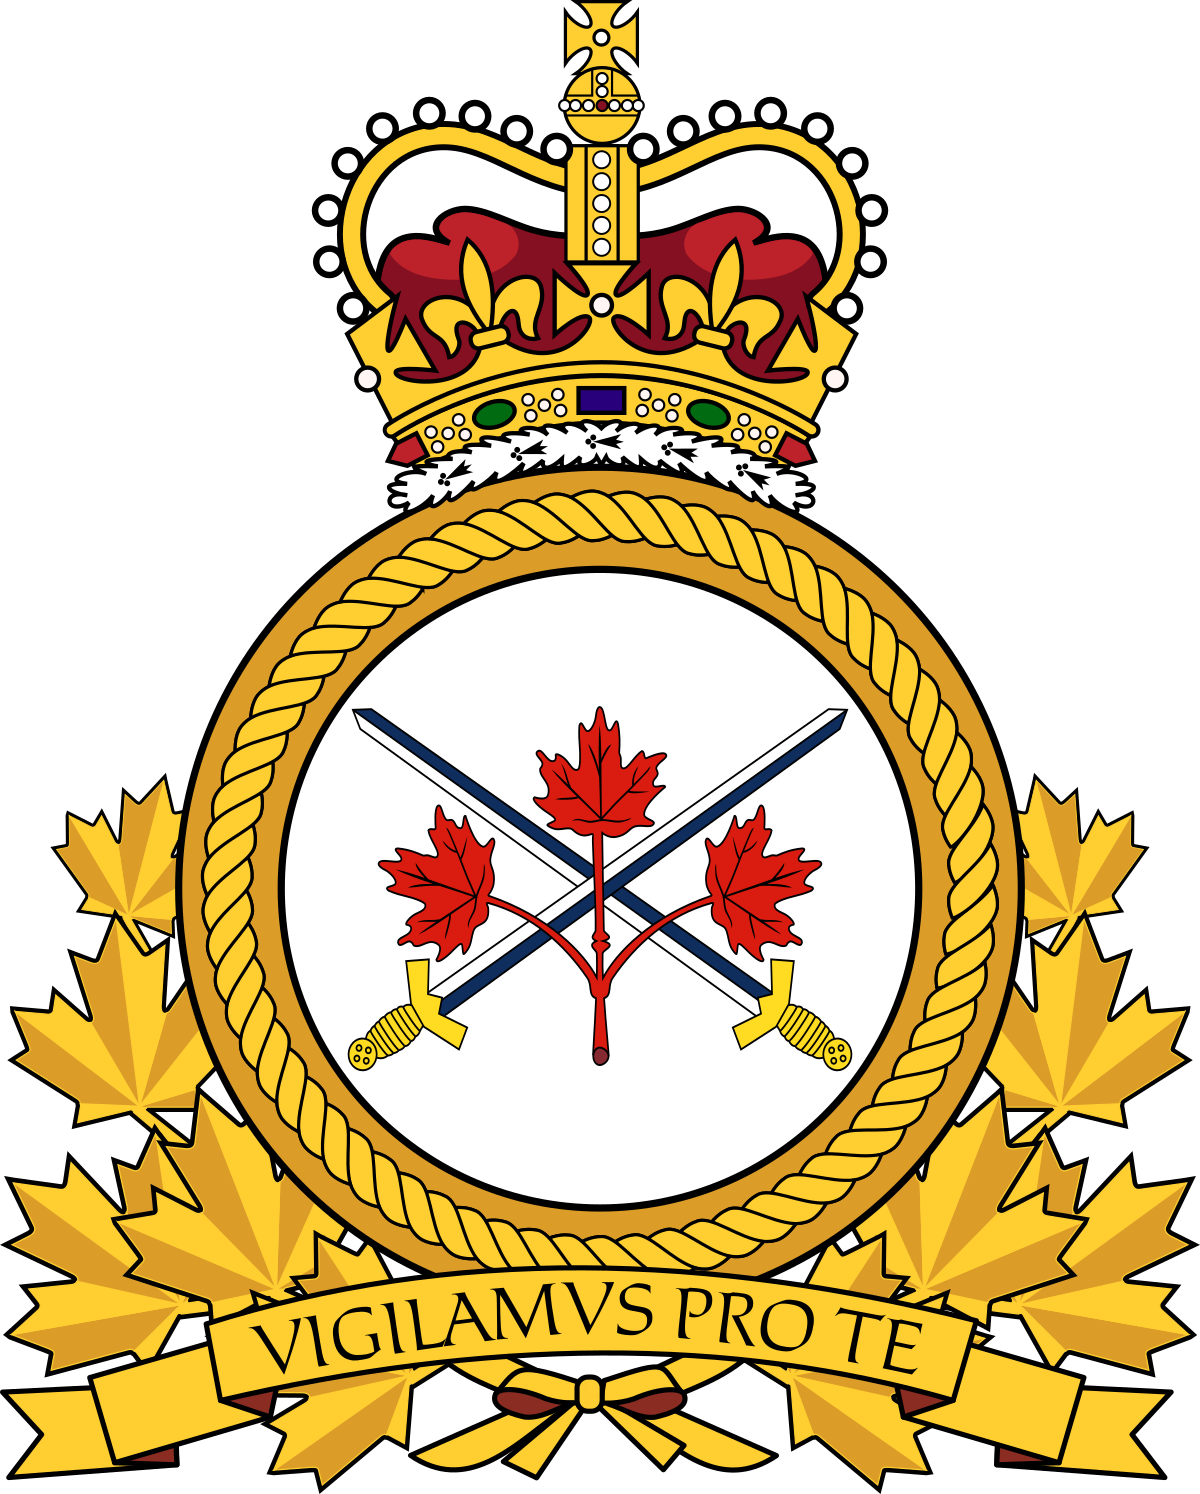 Army wikipedia . Soldiers clipart soldier canadian